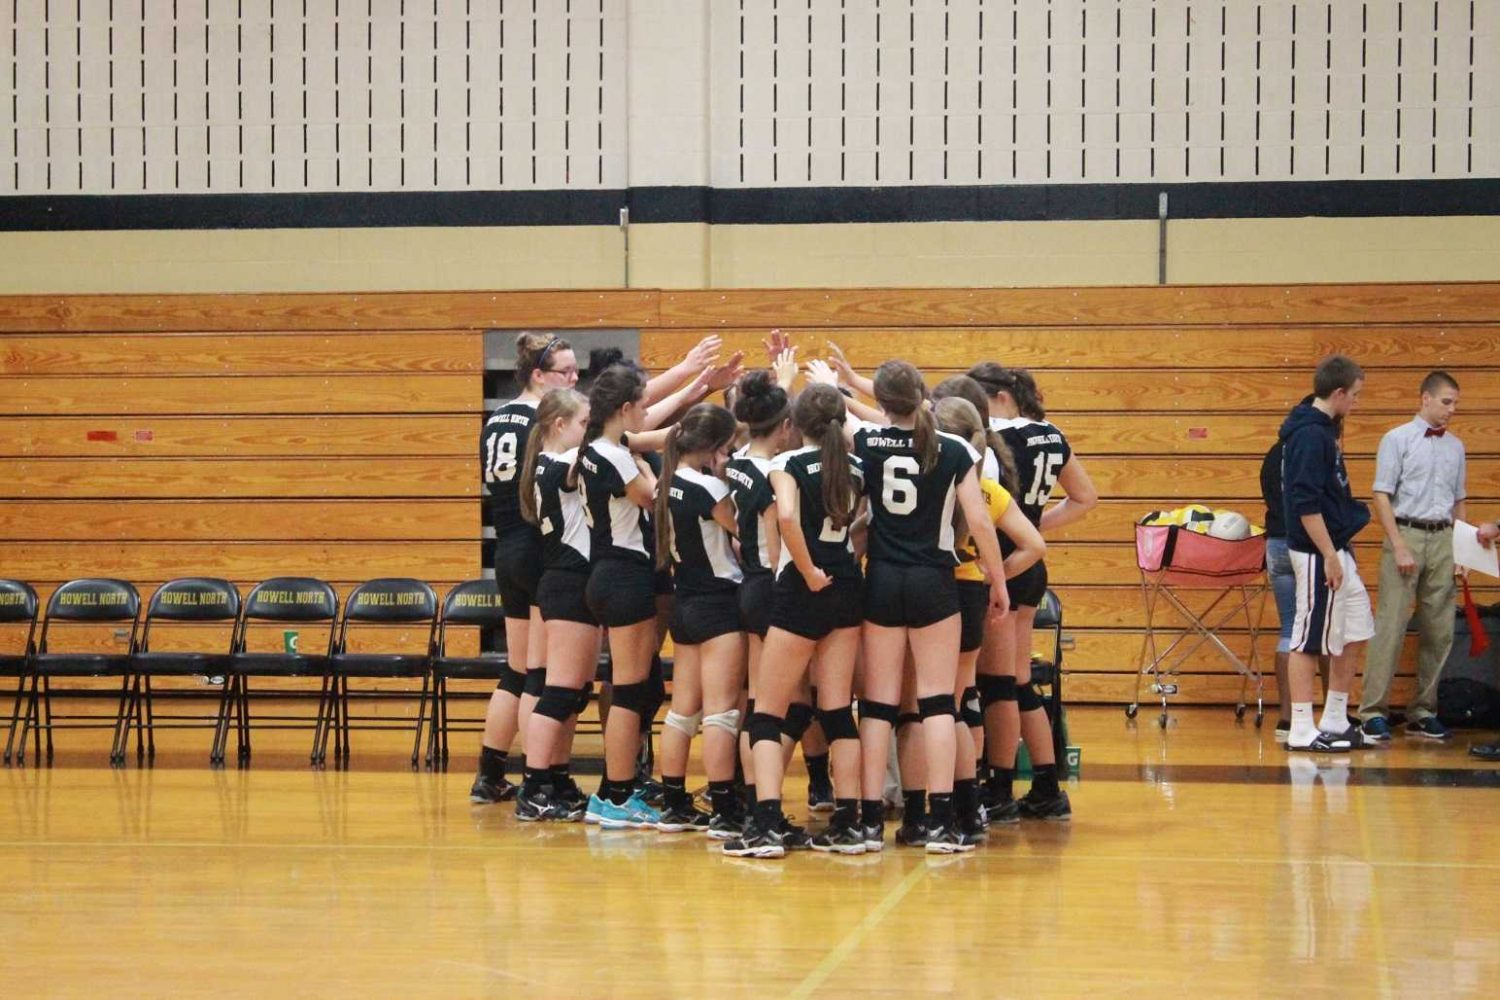 The freshmen volleyball girls huddle together before they start their game against Francis Howell Central.